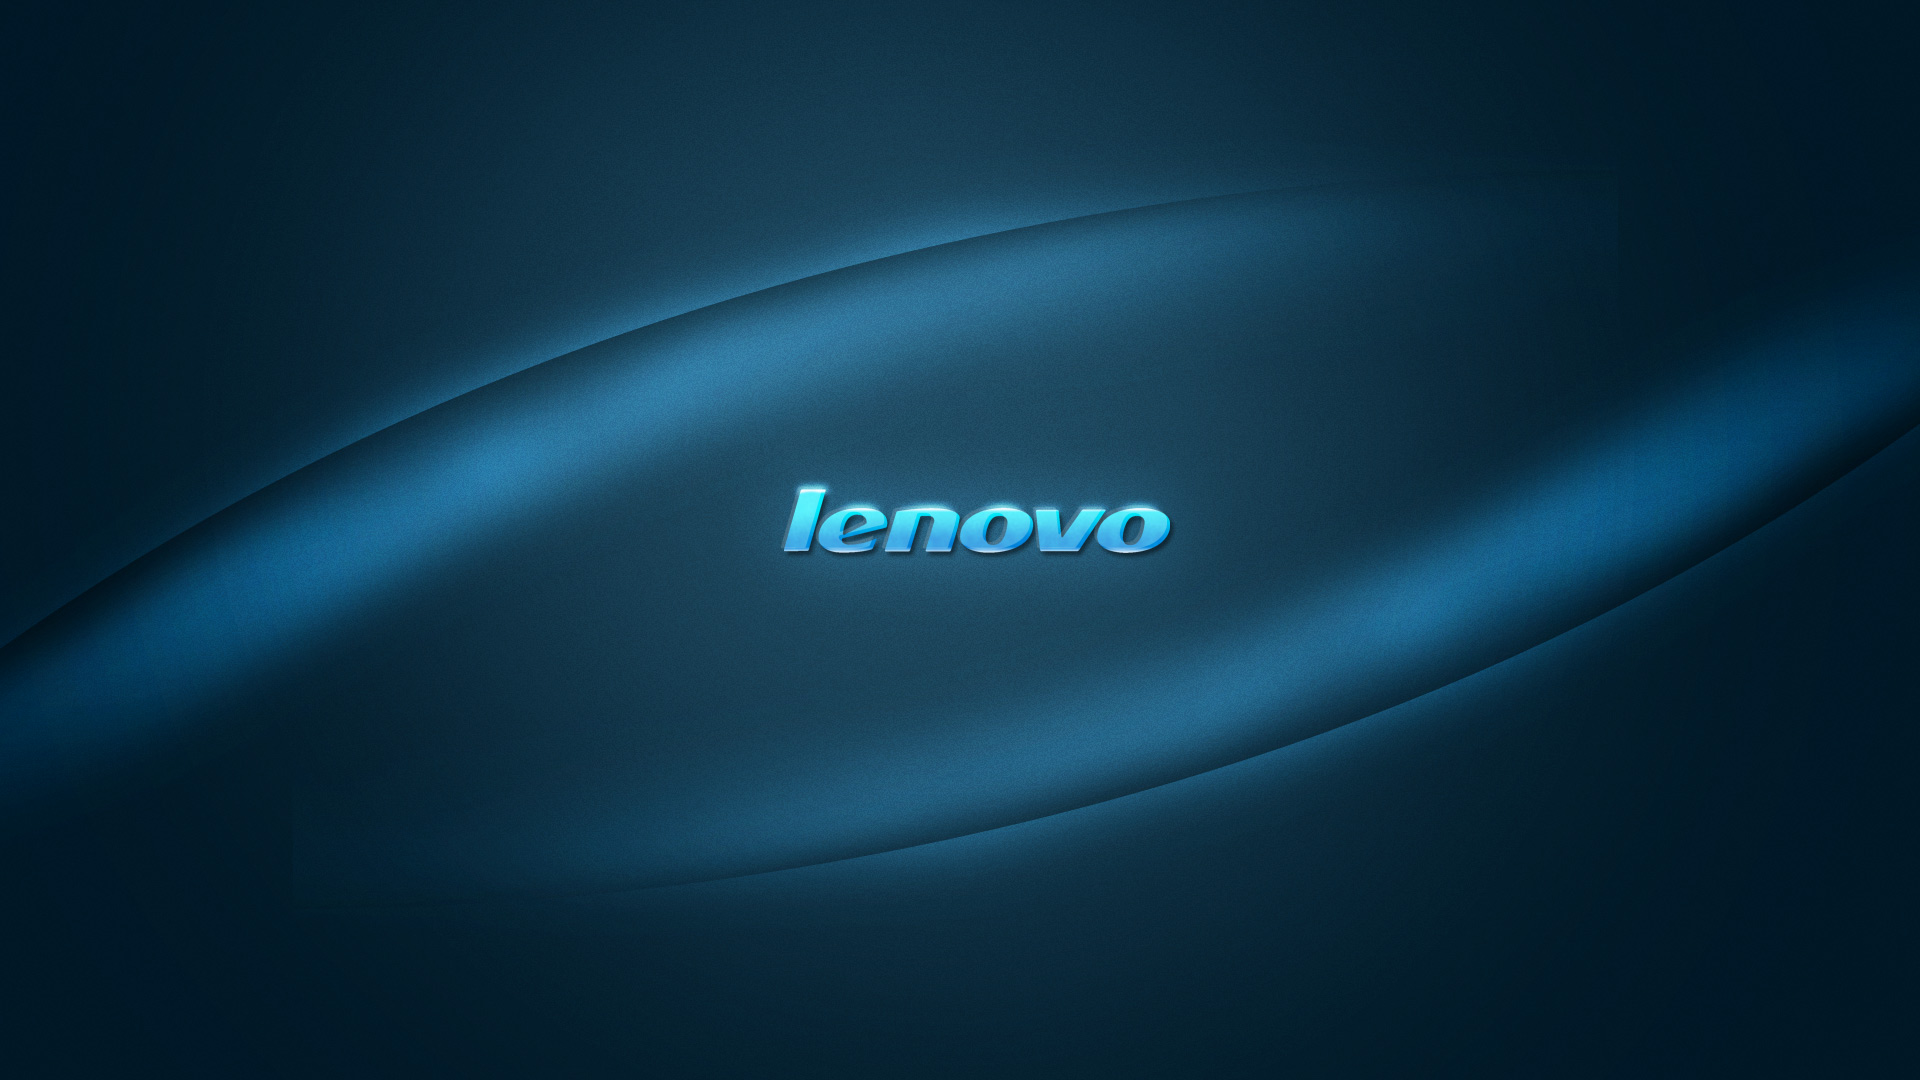 Lenovo Wallpaper 1080p